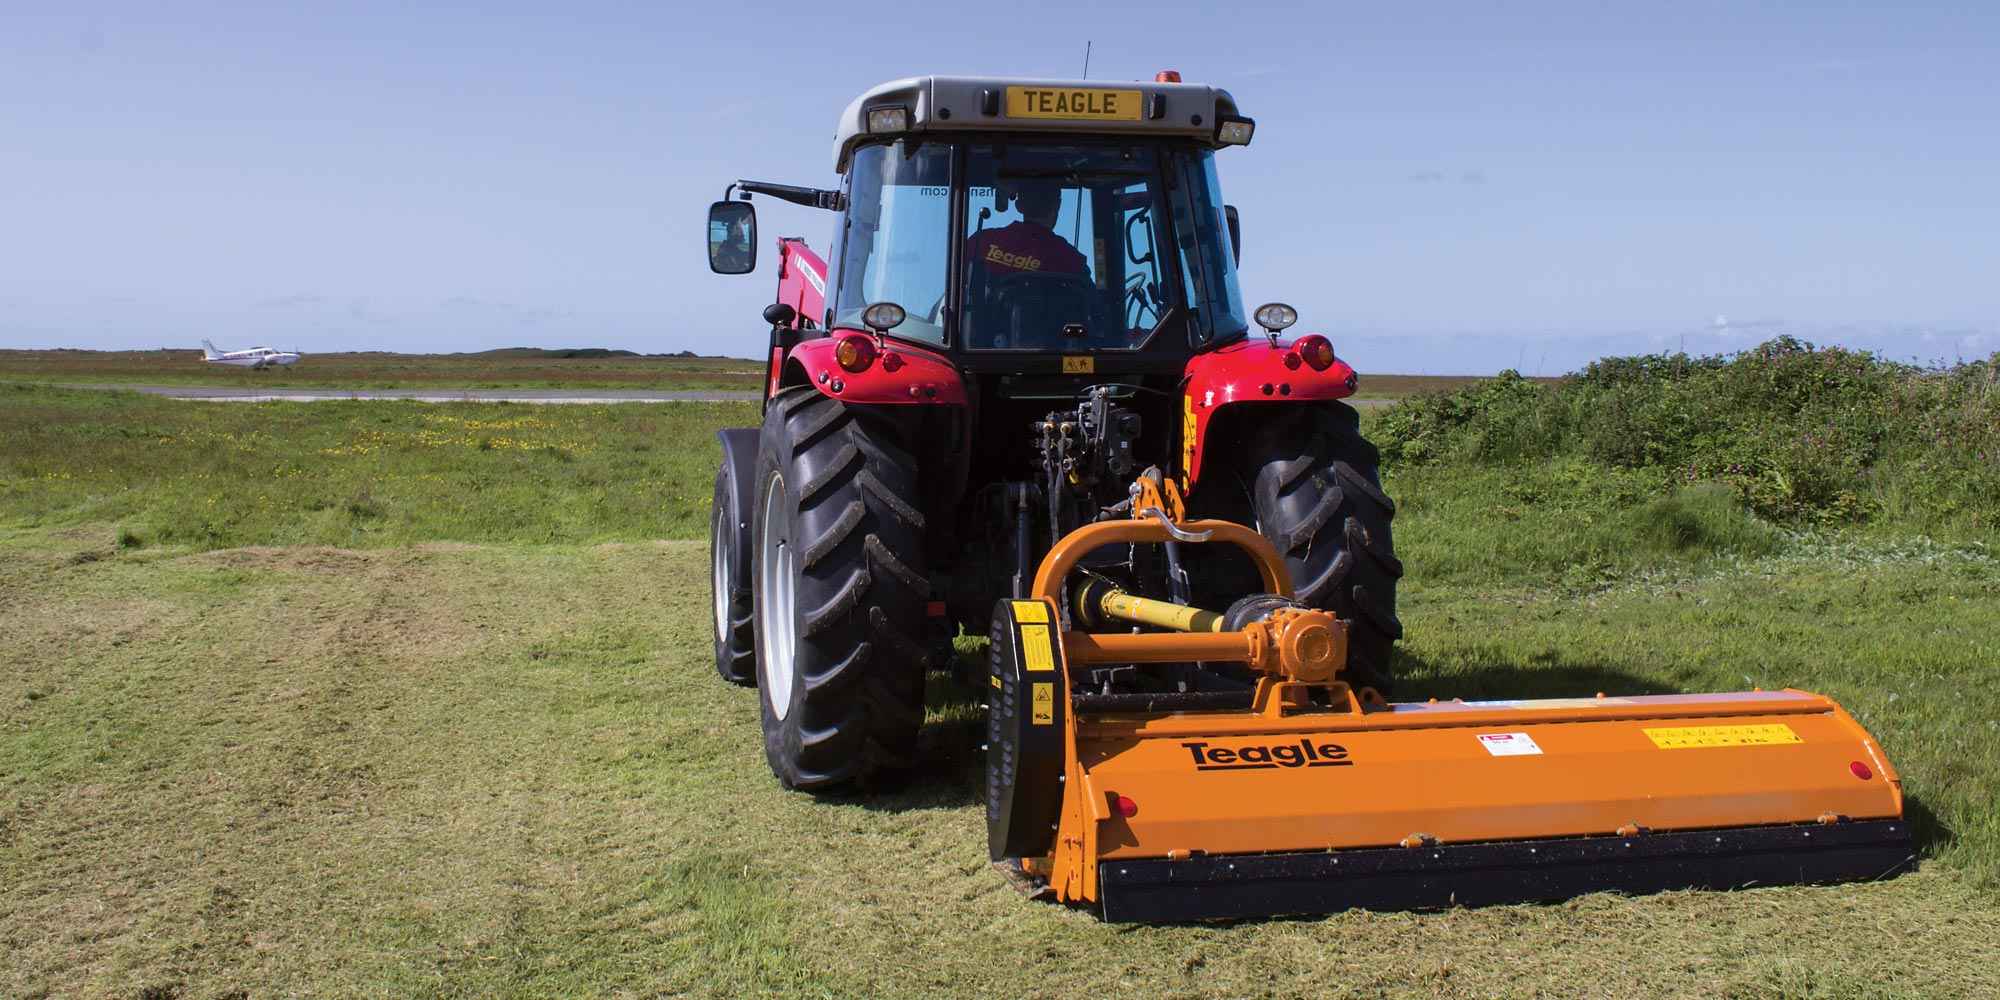 Tractor Mounted Flail Mowers & Mulchers | Teagle